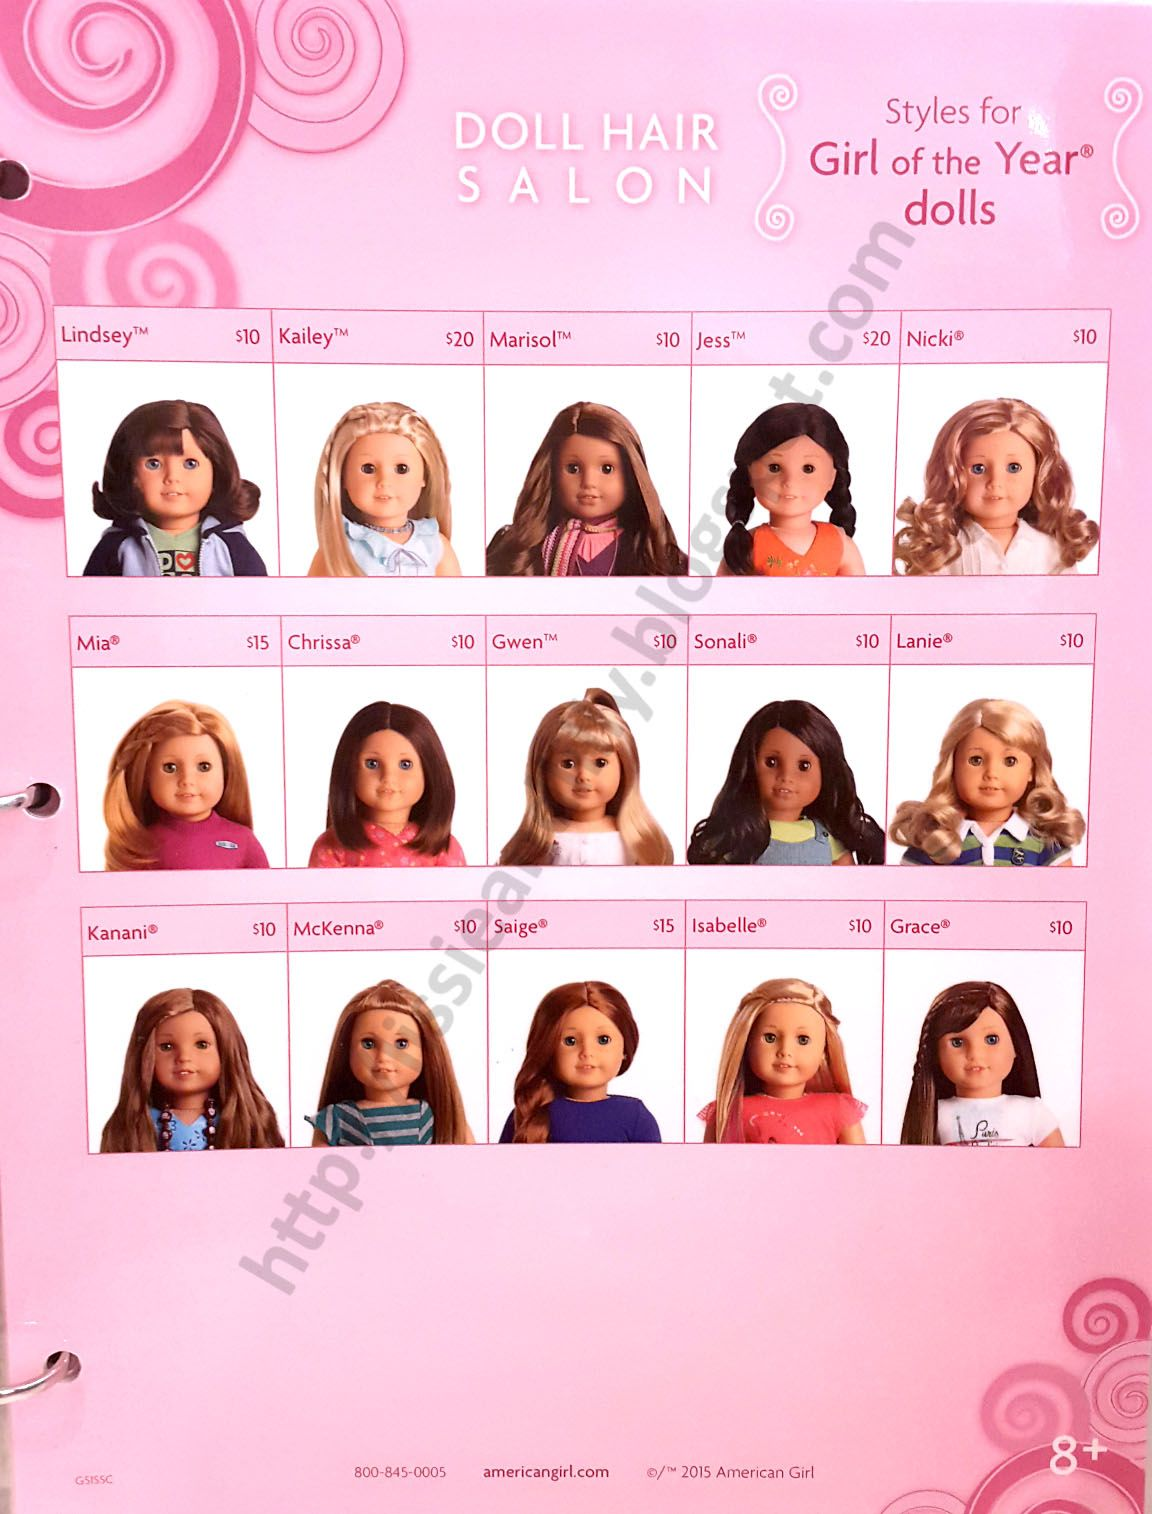 american girl of the year list google search american girl doll pinterest american girl. Black Bedroom Furniture Sets. Home Design Ideas